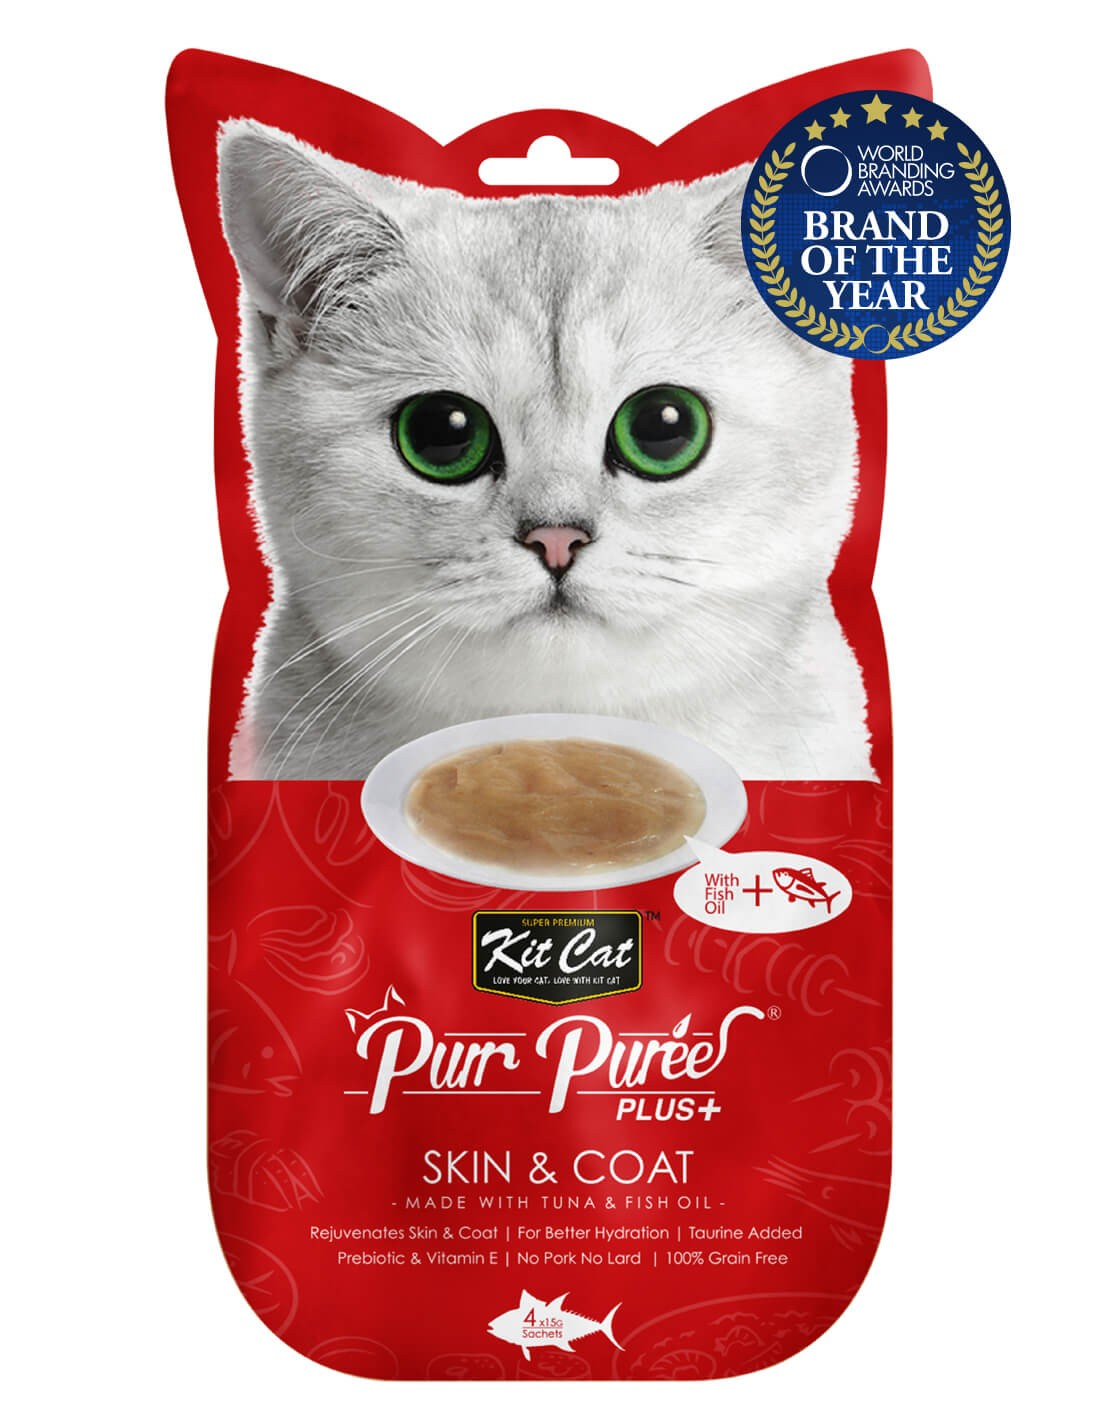 KIT CAT PurrPuree Atún y Aceite de Pescado - Skin Coat 60g